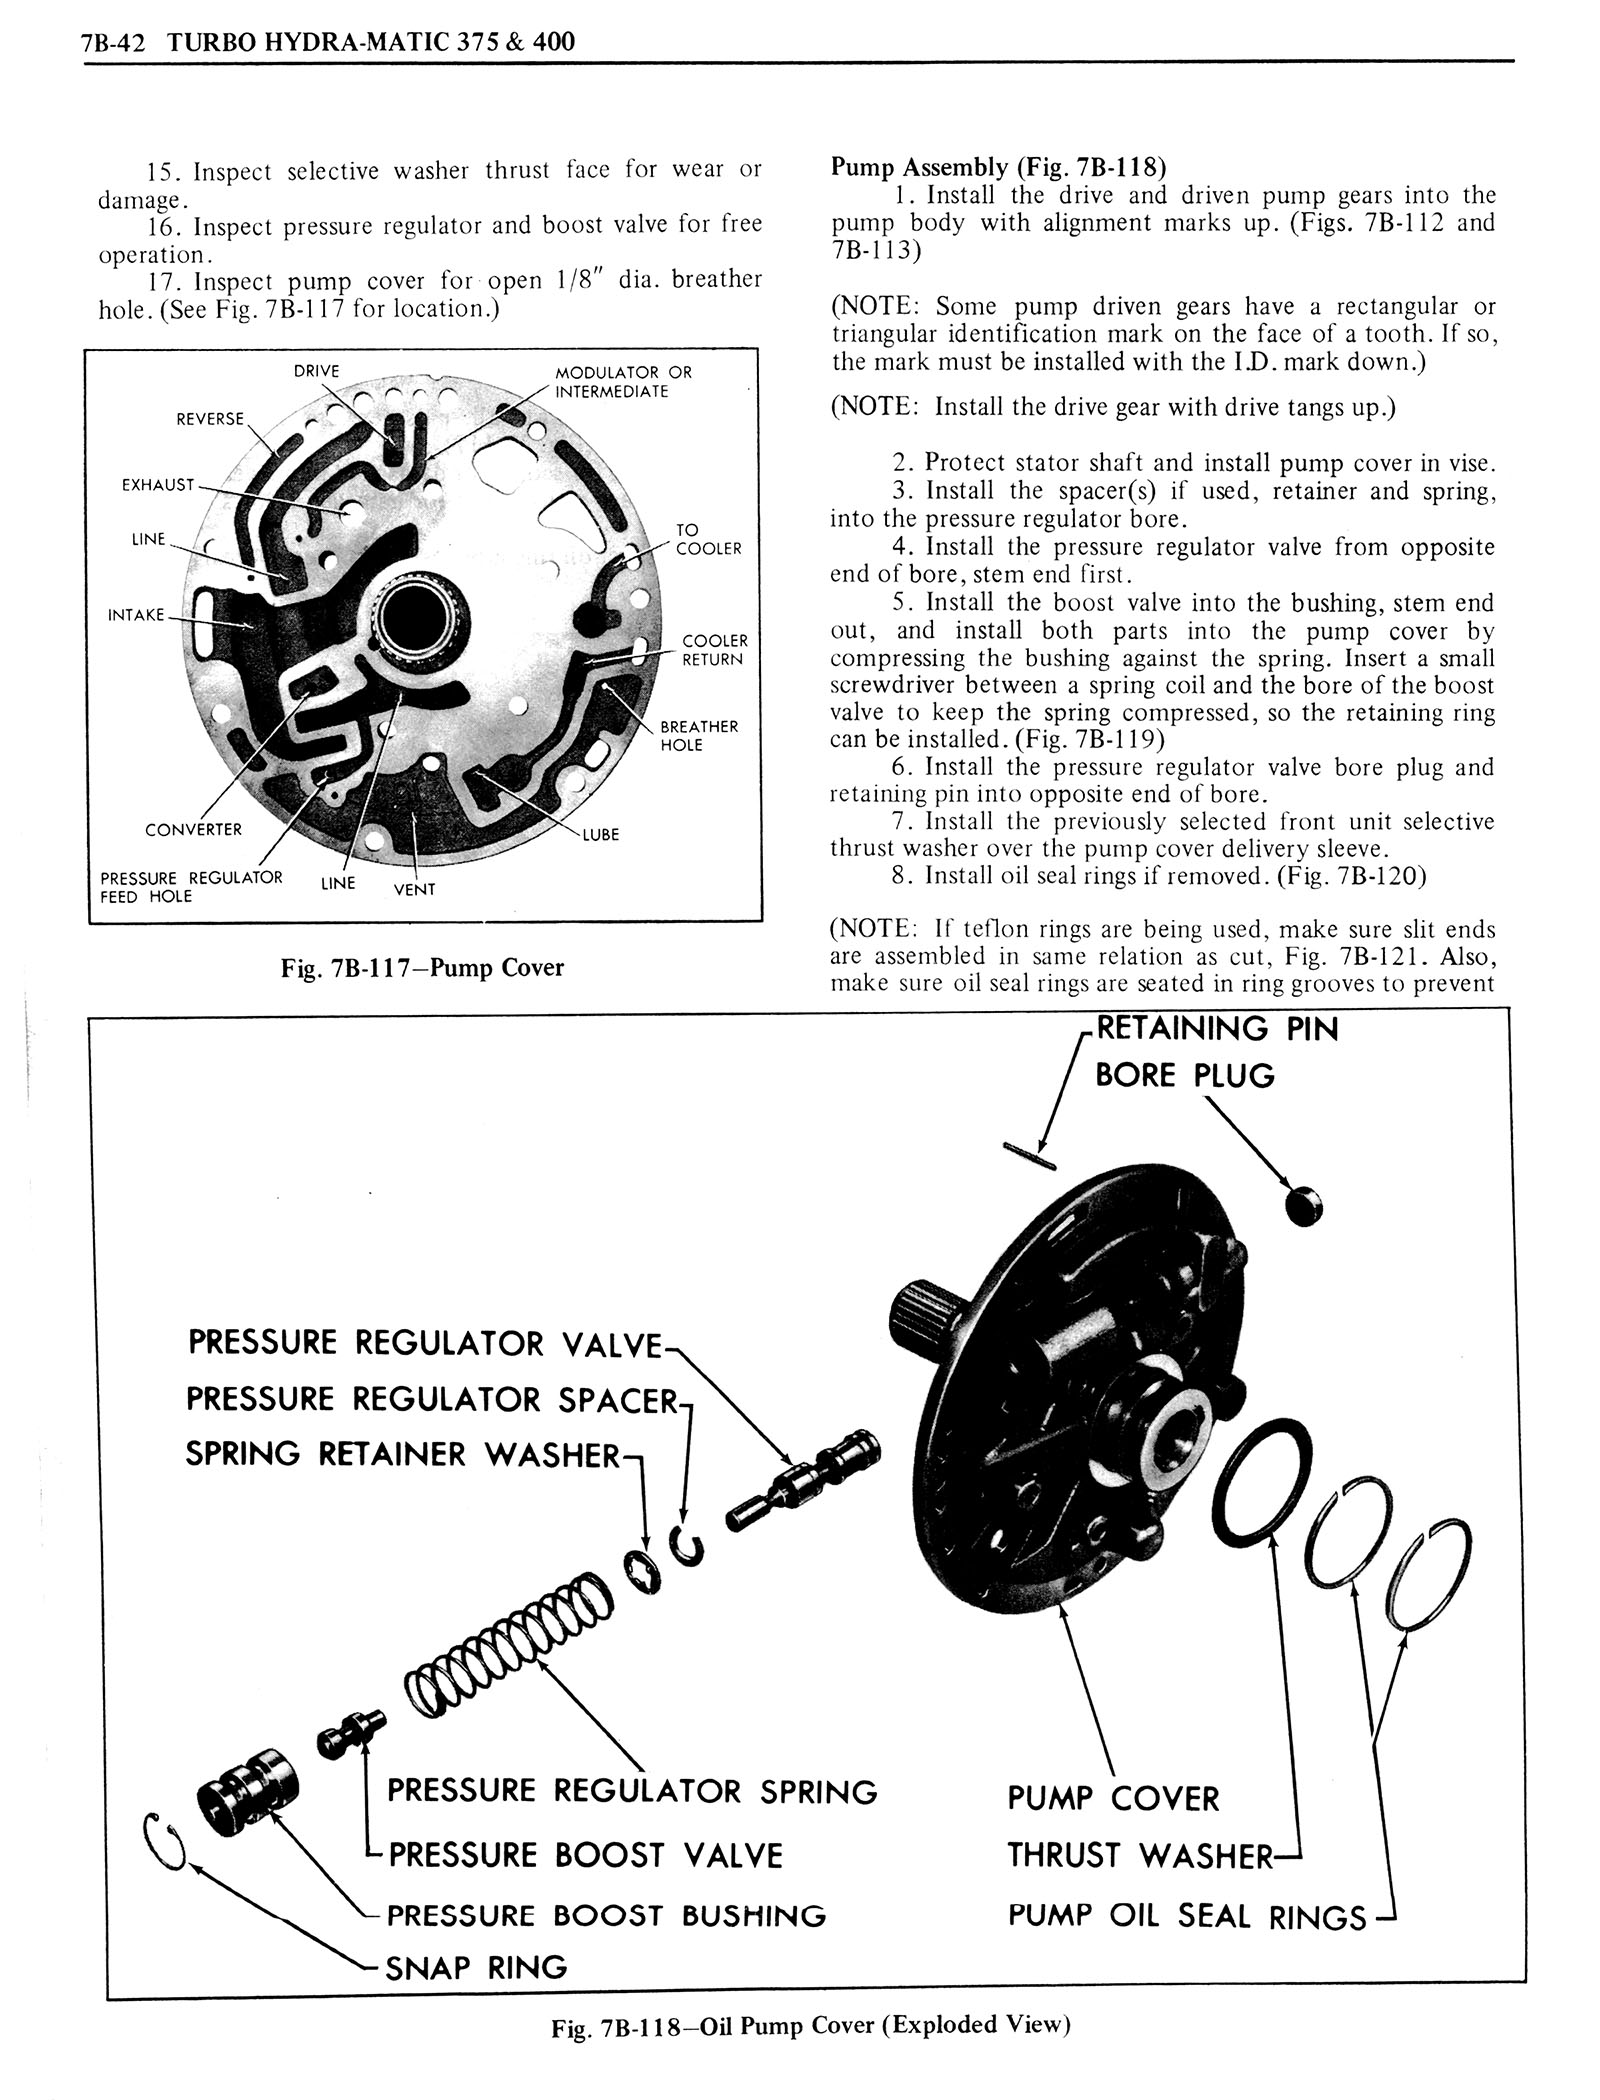 1976 Oldsmobile Service Manual page 774 of 1390